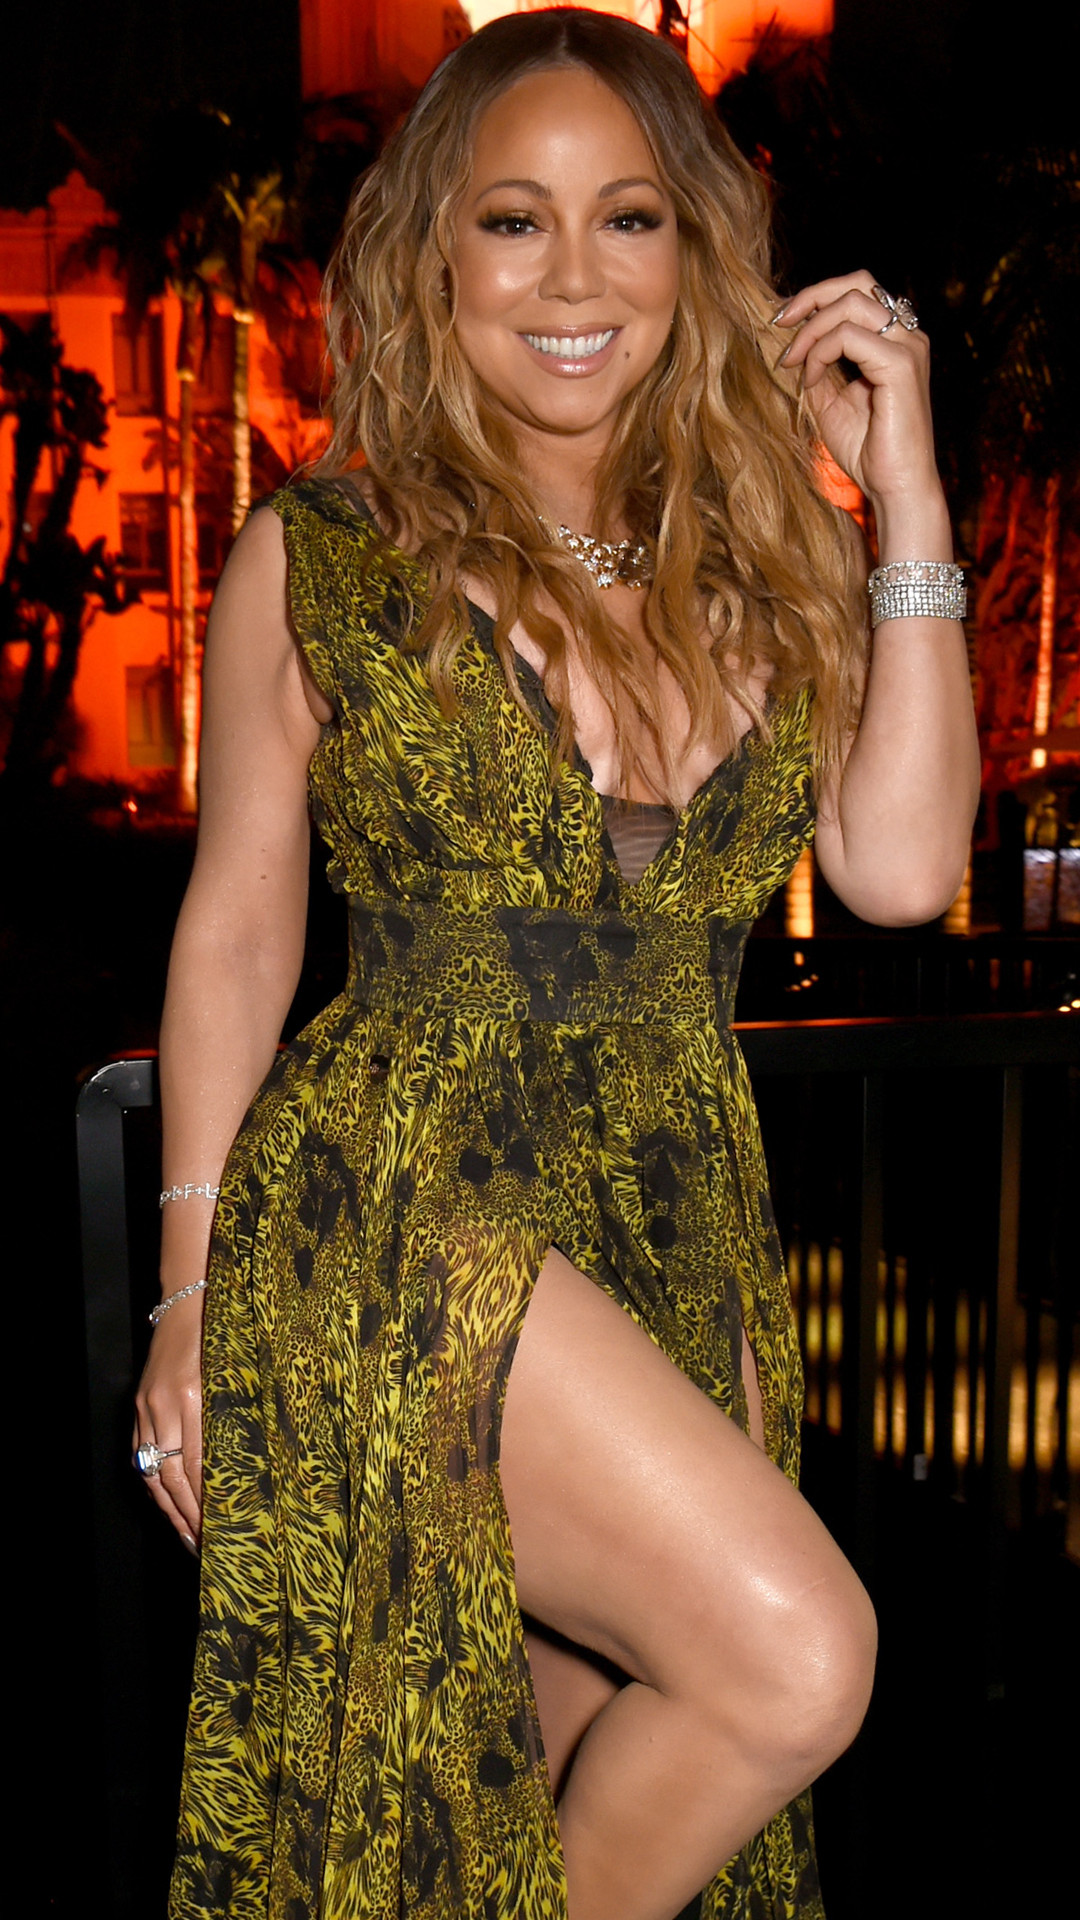 Mariah Carey, 2017 Oscars Party Pics, Vanity Fair Inside Pics